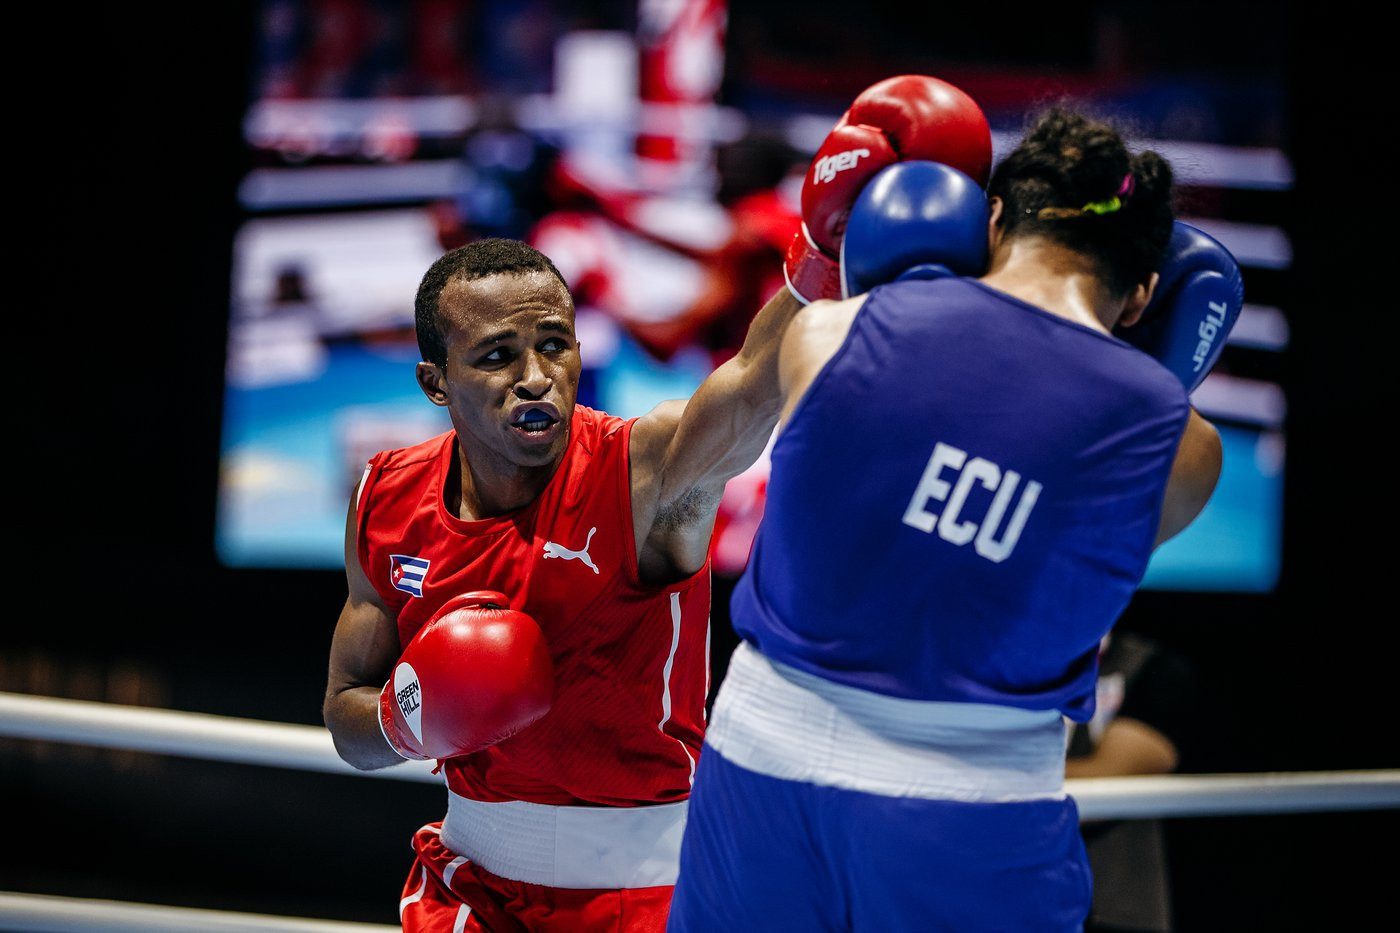 Cuba's Lazaro Álvarez, featherweight top seed, triumphed in his opening bout at the AIBA World Championships ©Yekaterinburg 2019